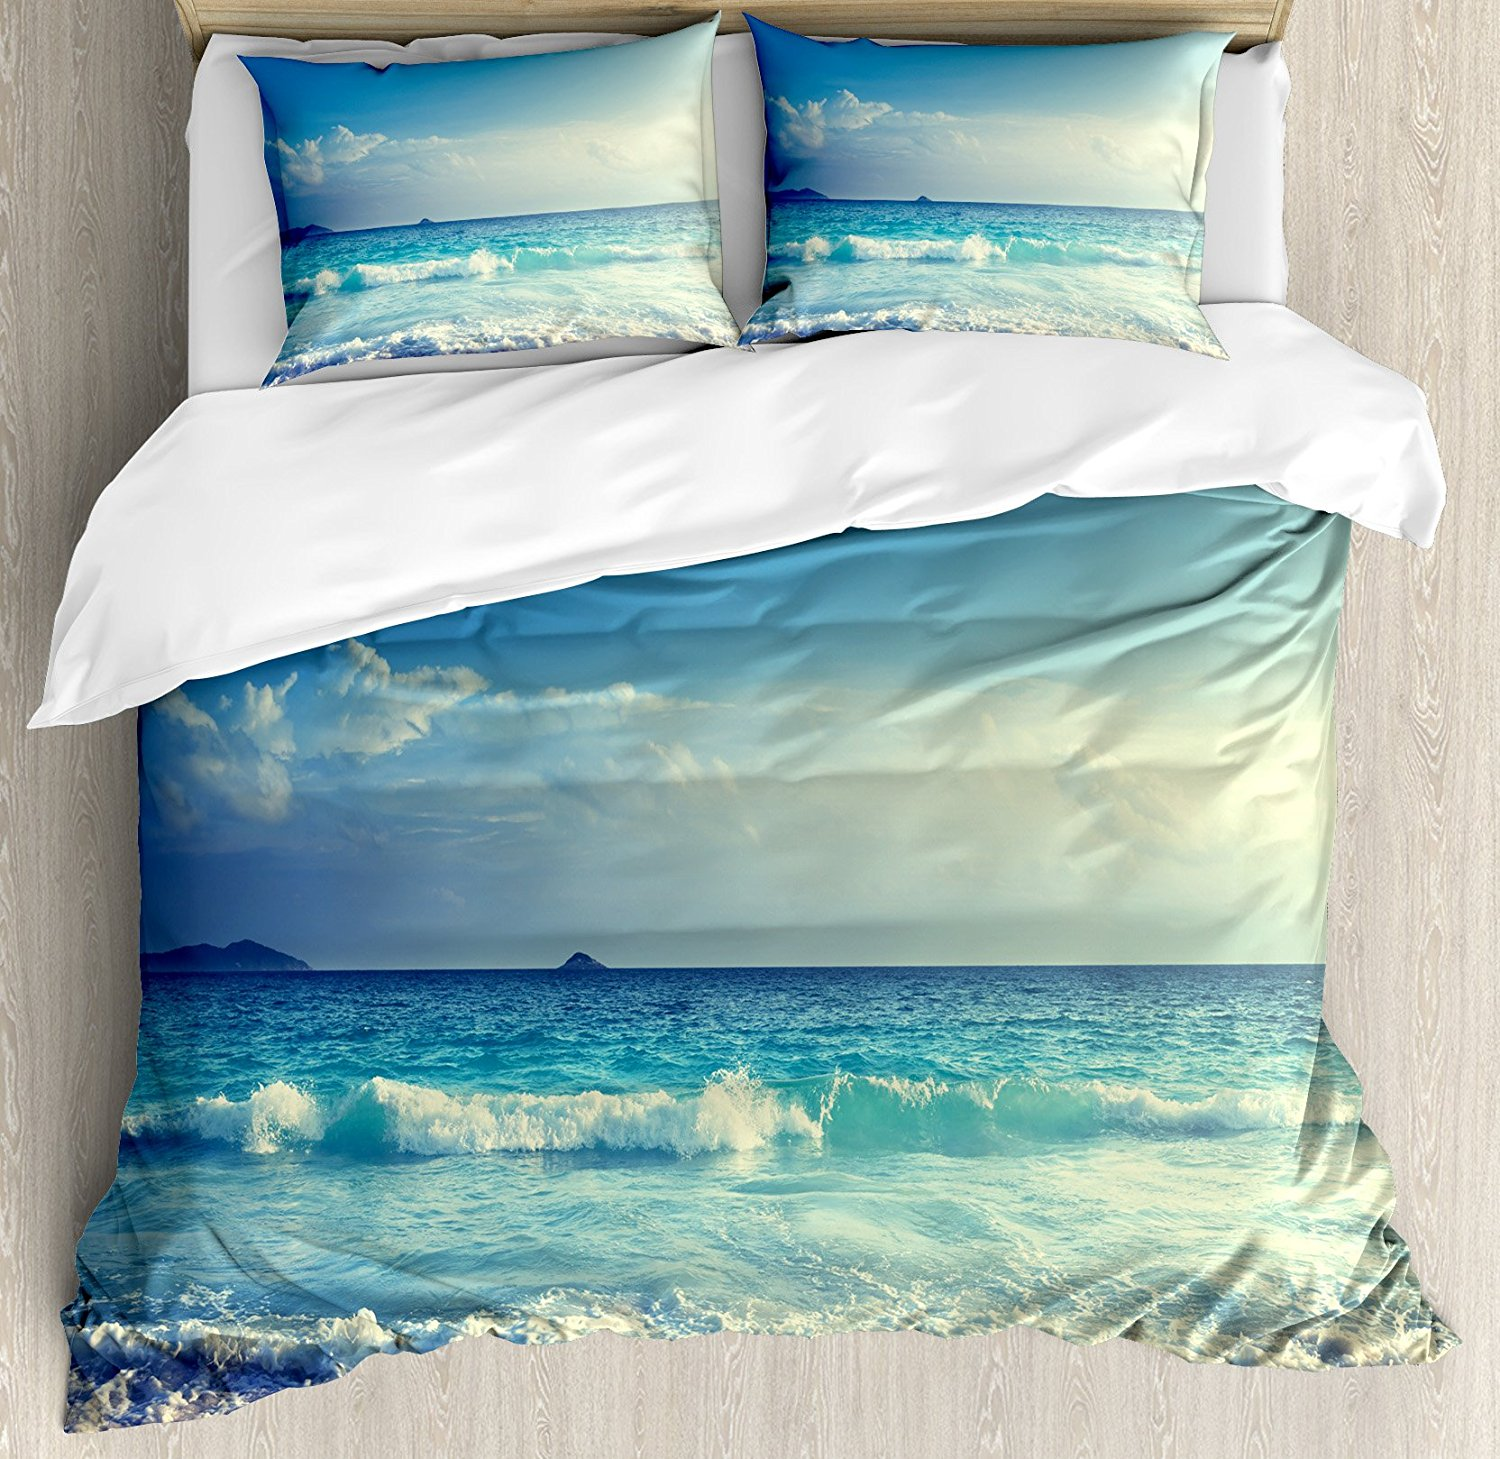 Ride The Wave Duvet Cover Set Surfer Inside Ocean Wave Adventure Adrenalin Energy Sea Sports Picture 4 Piece Bedding Set Bedding Sets